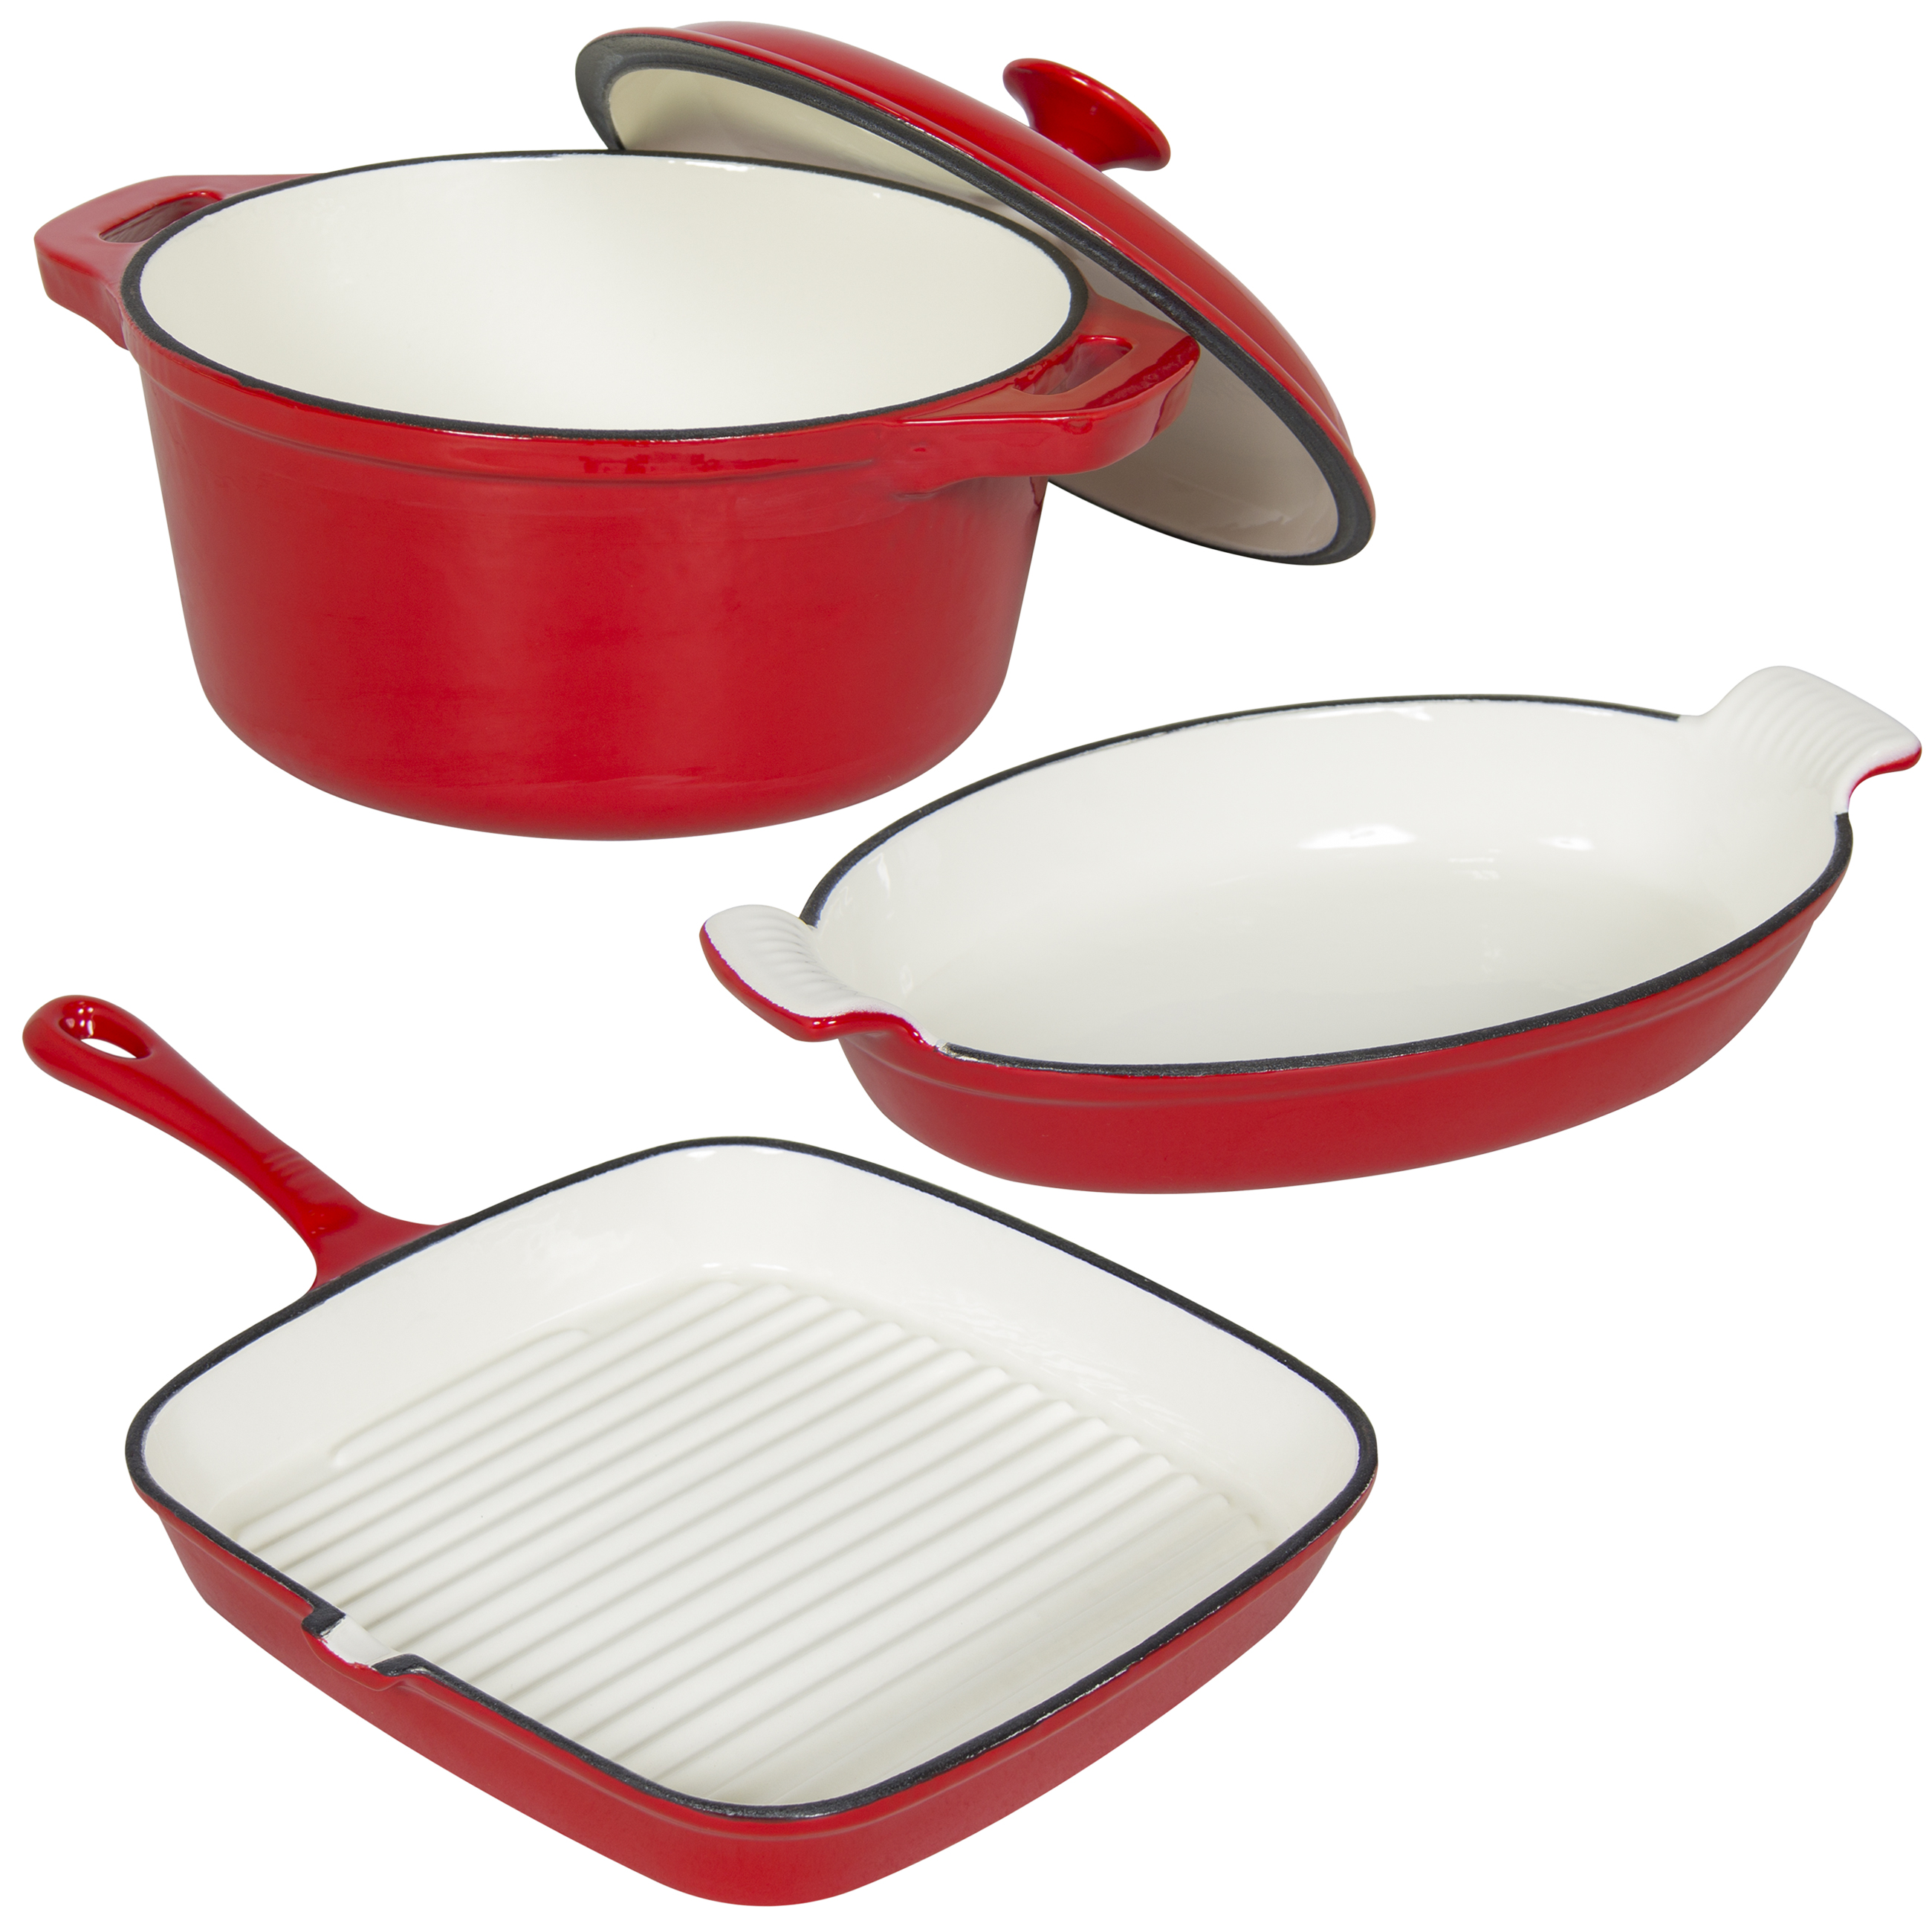 Best Choice Products Cast Iron Dishes Set of 3 Casserole,...